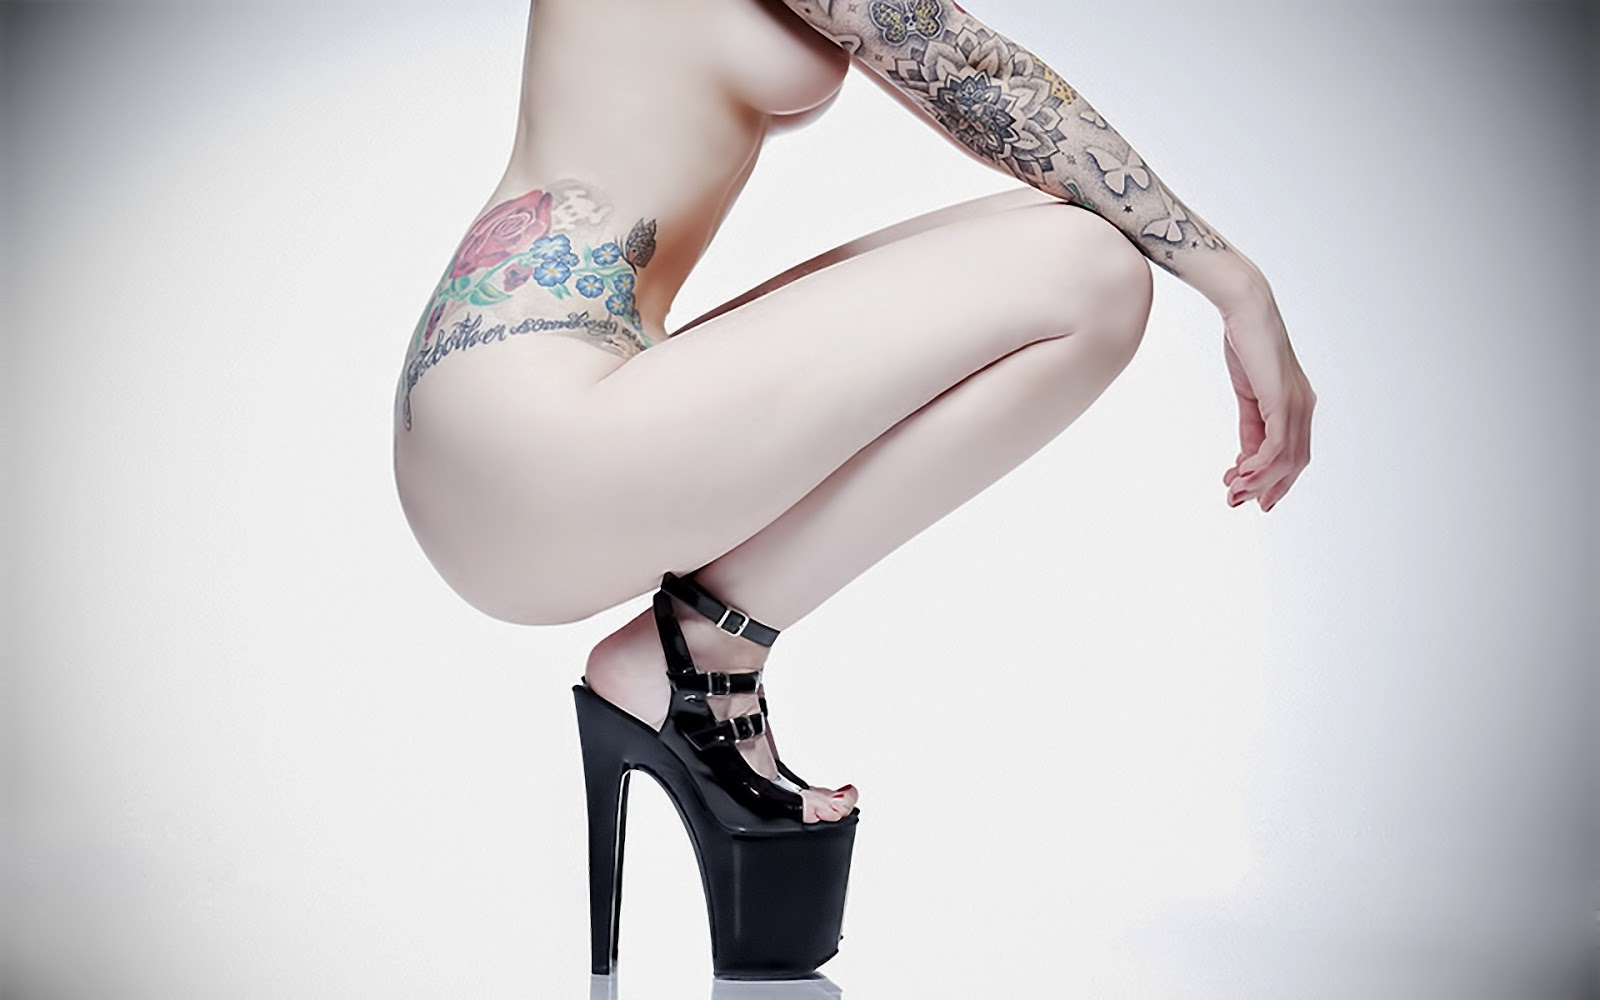 Best tattoo girl collection in the world - Flower